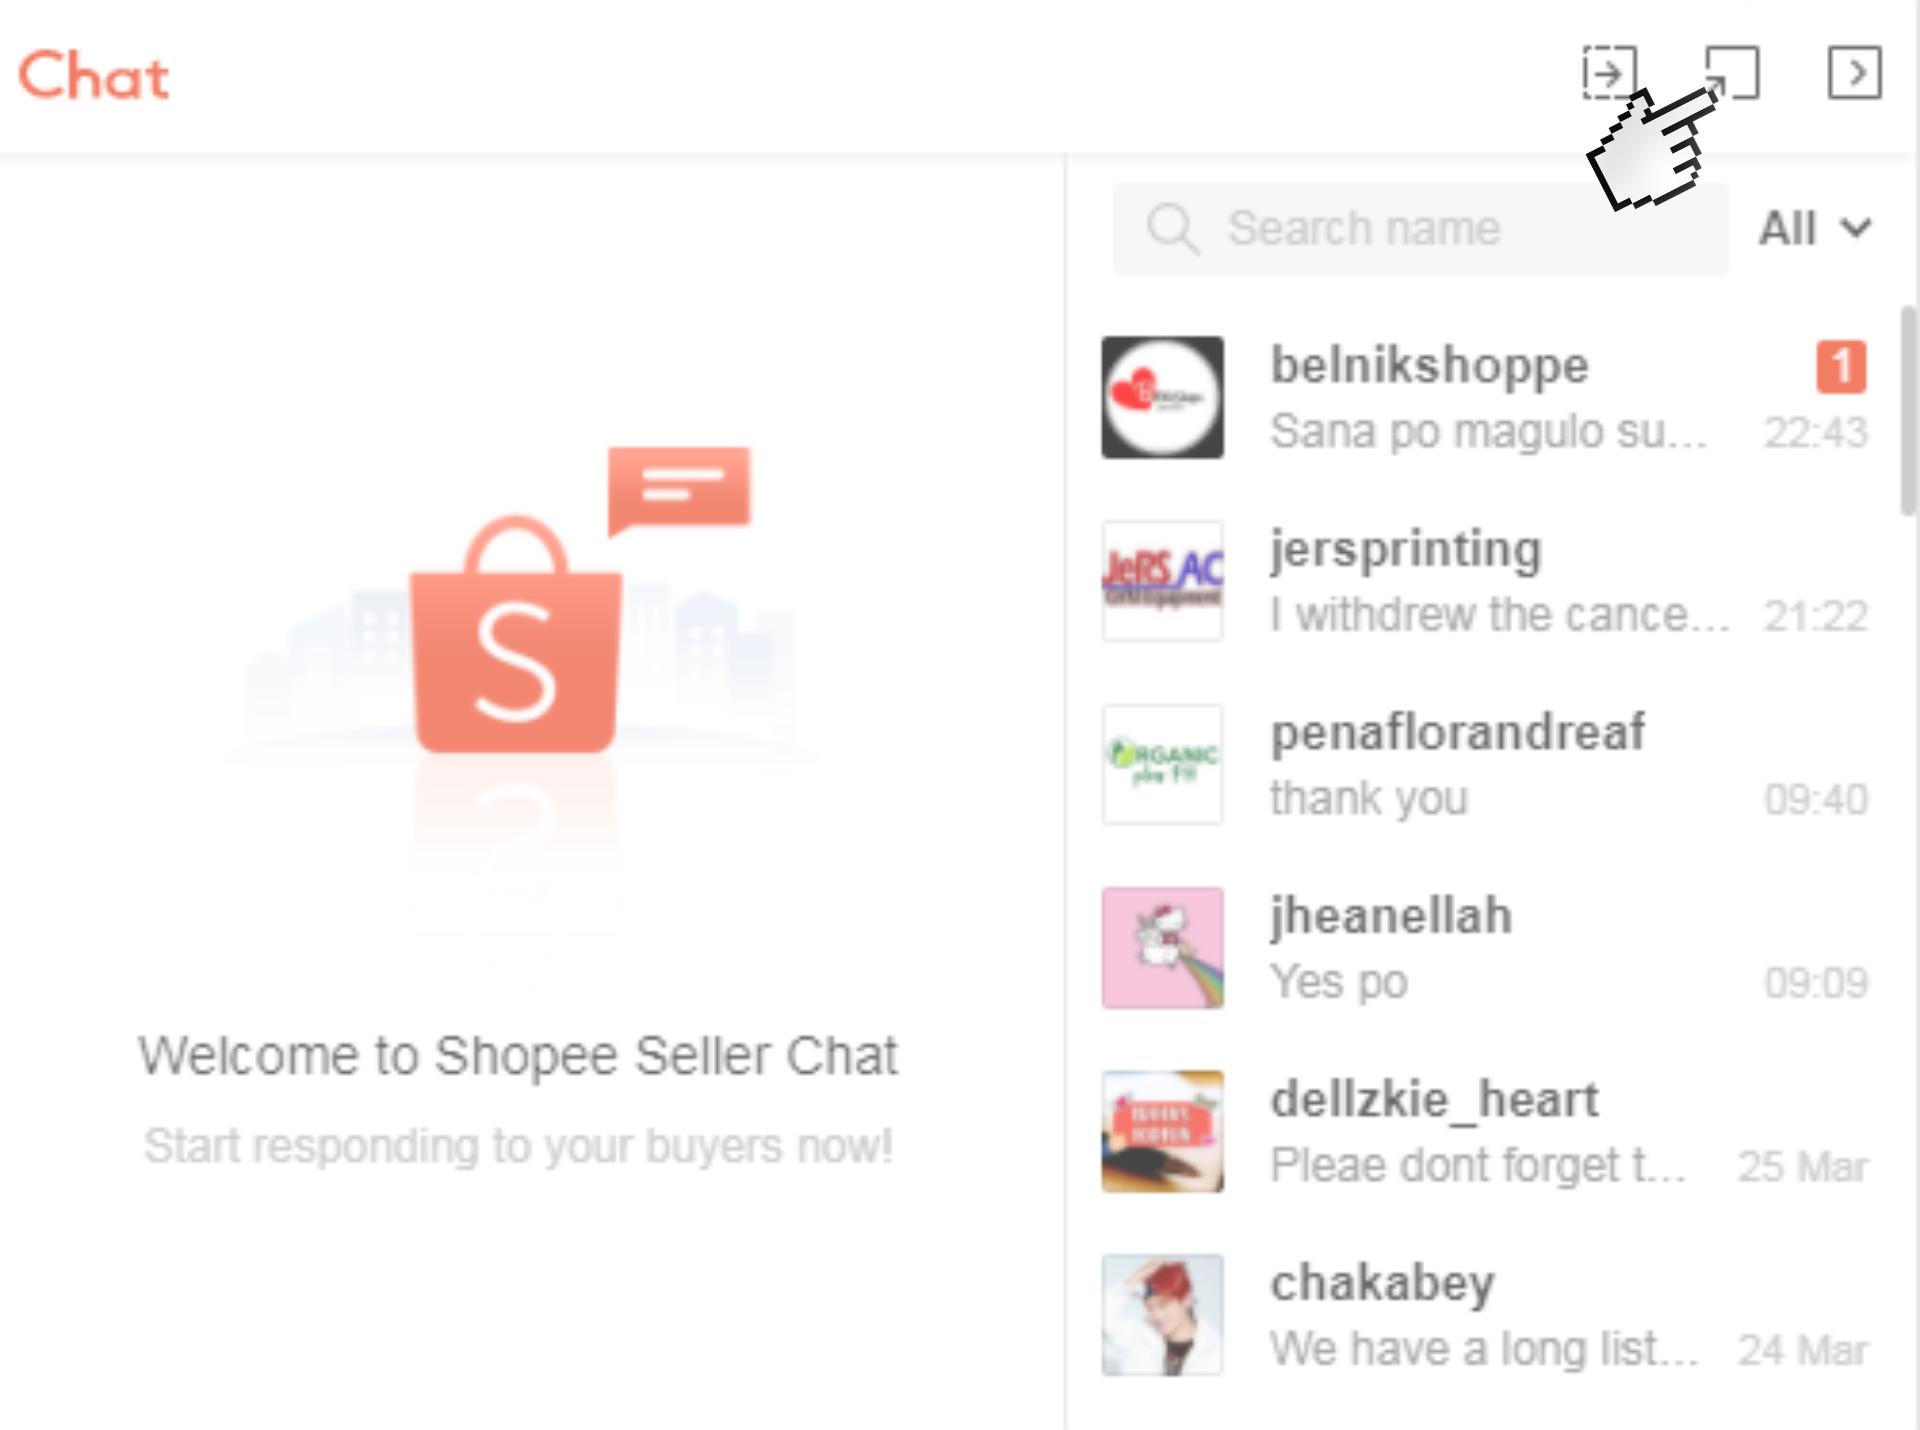 Selling on Shopee - 6 Biggest Success Factors For A Shopee Seller